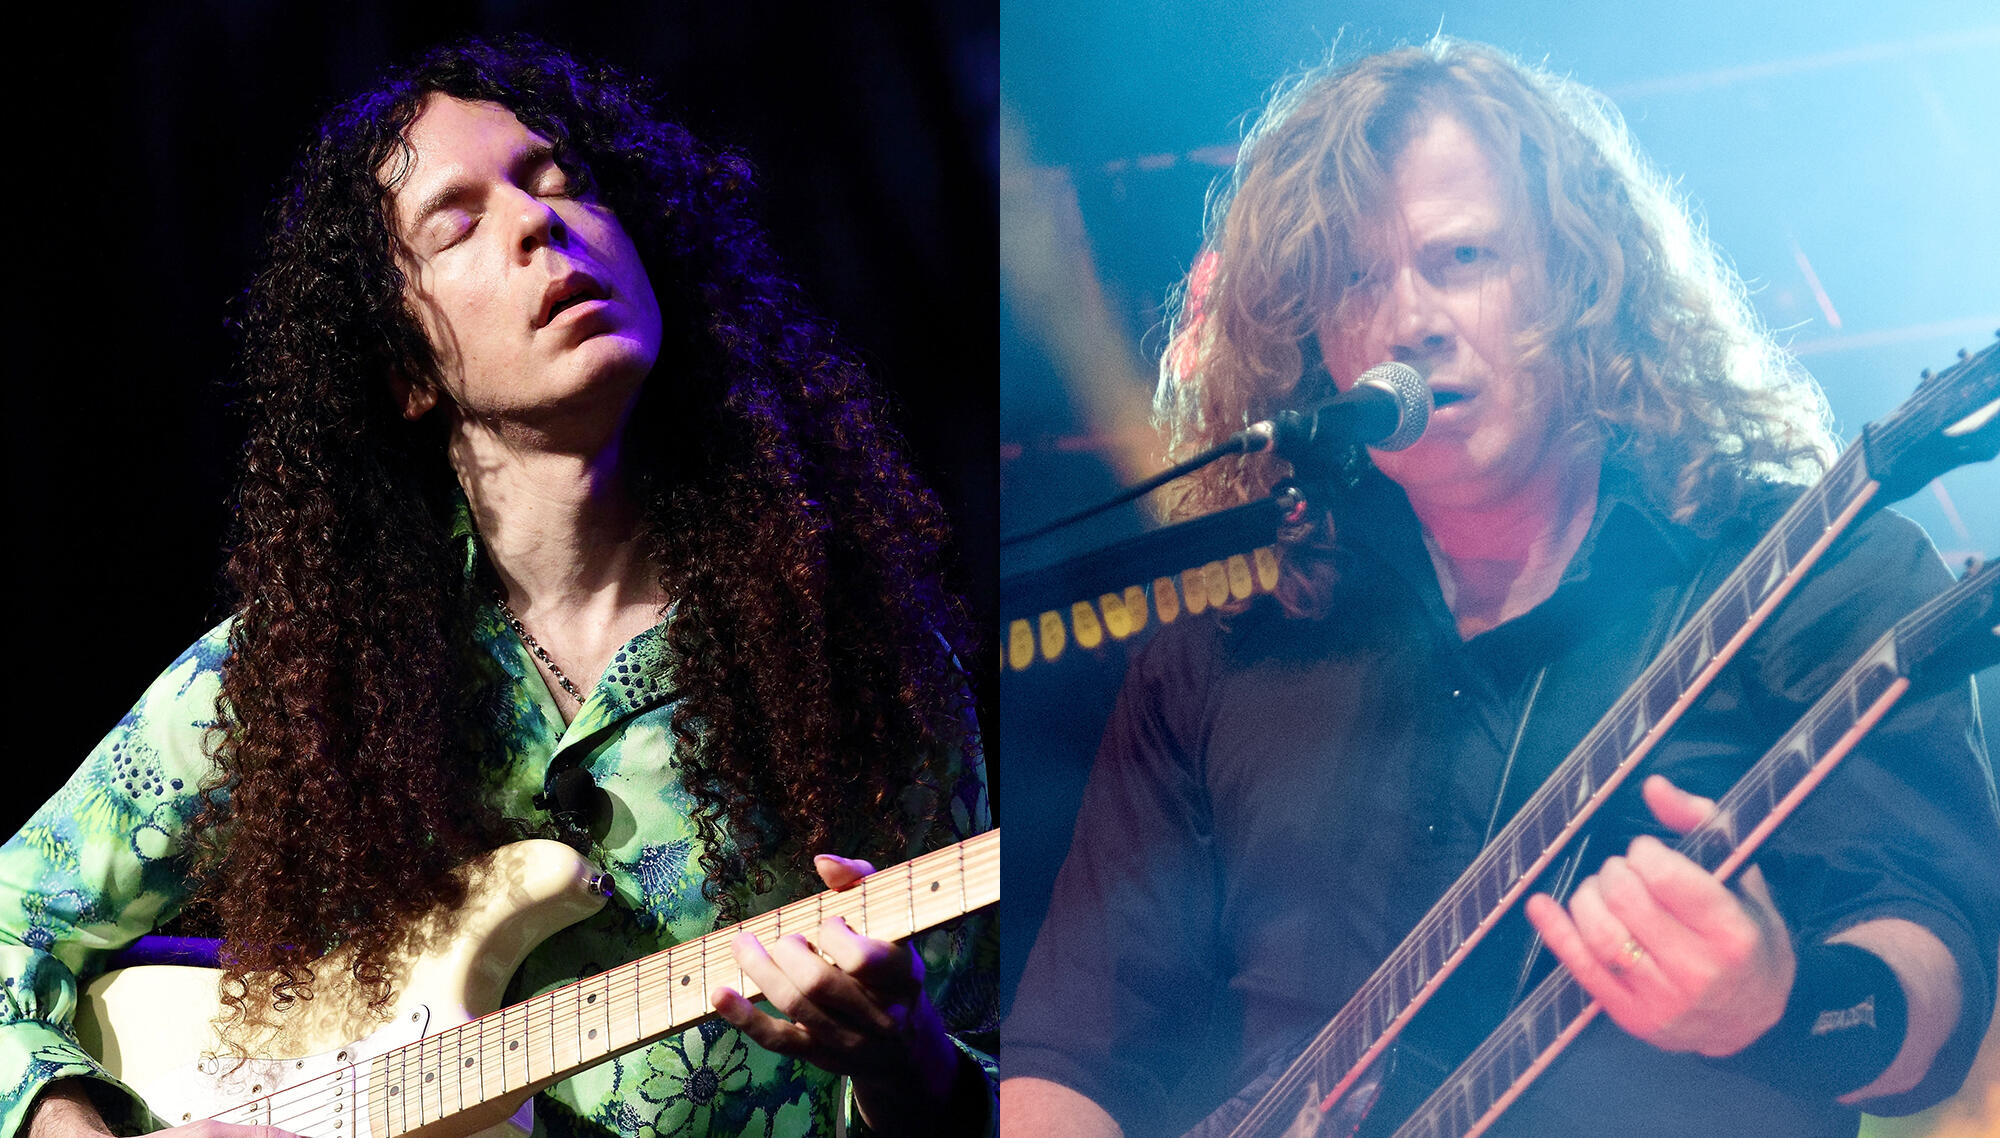 Marty Friedman Explains Why Megadeth Never Reunited 'Rust In Peace' Lineup